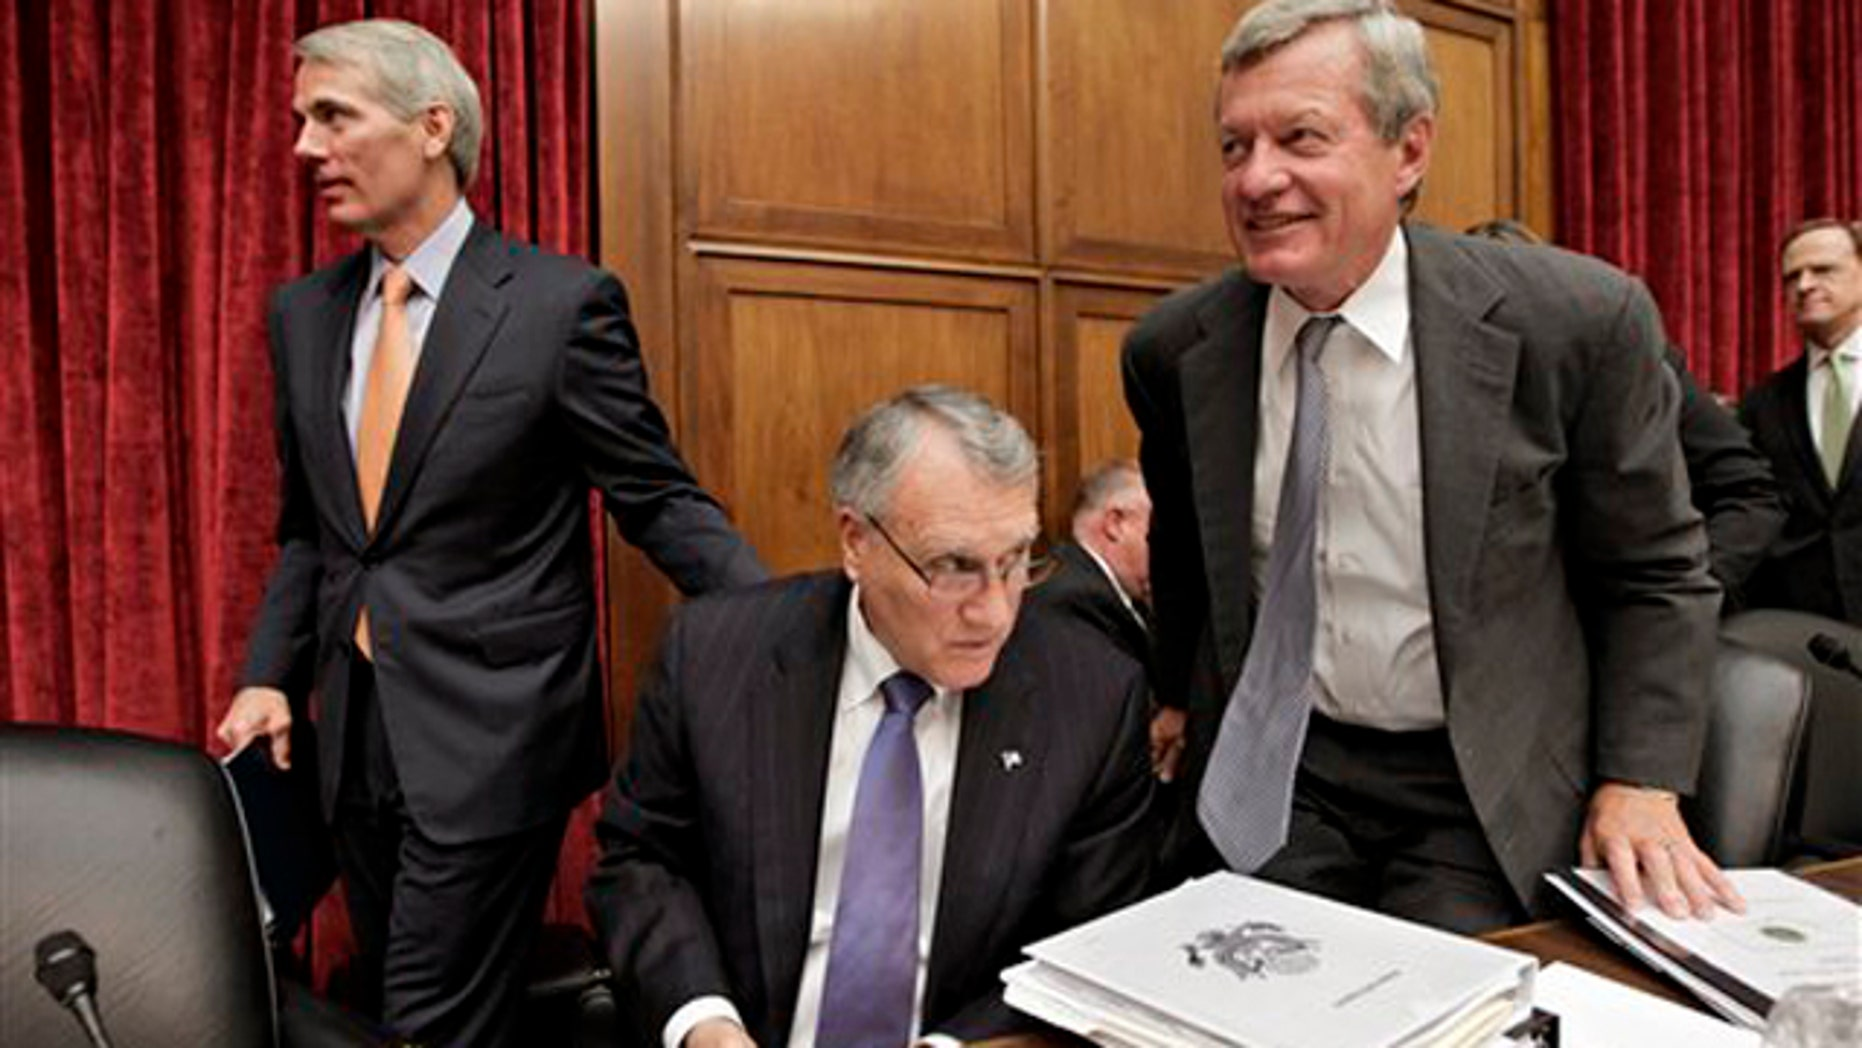 Sen. Jon Kyl, center, Sen. Max Baucus, right, and Sen. Rob Portman, left, finish with a meeting of the Joint Select Committee on Deficit Reduction on Capitol Hill in Washington Sept. 8.